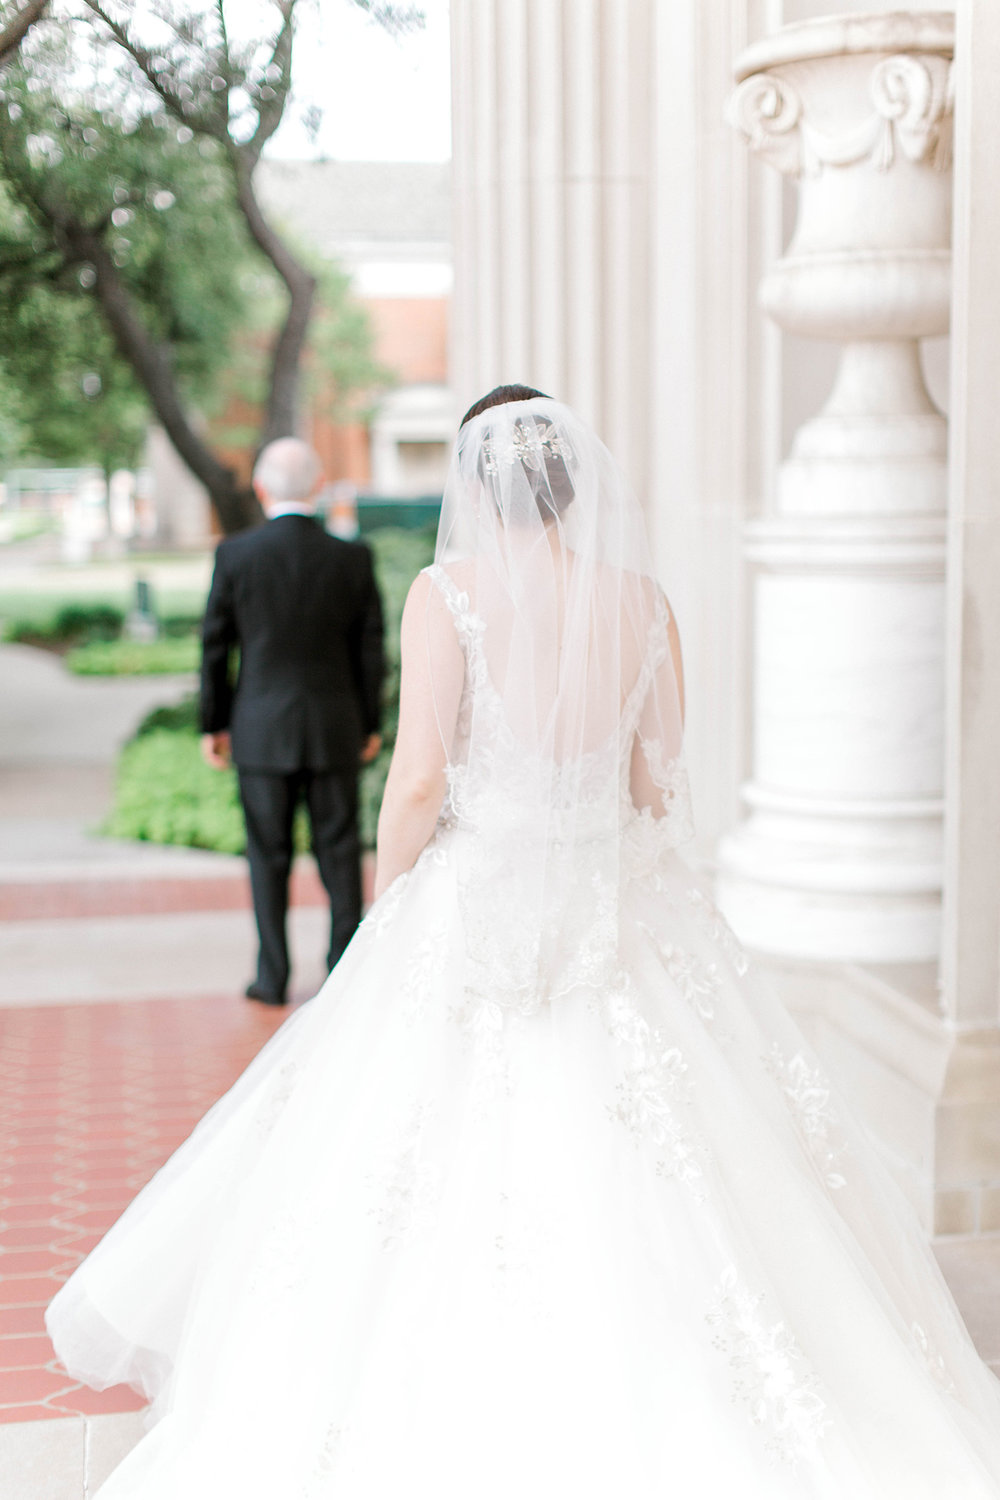 Dallas TX Wedding Planner - Allday Events - Hall on Dragon Wedding - 00001.jpg